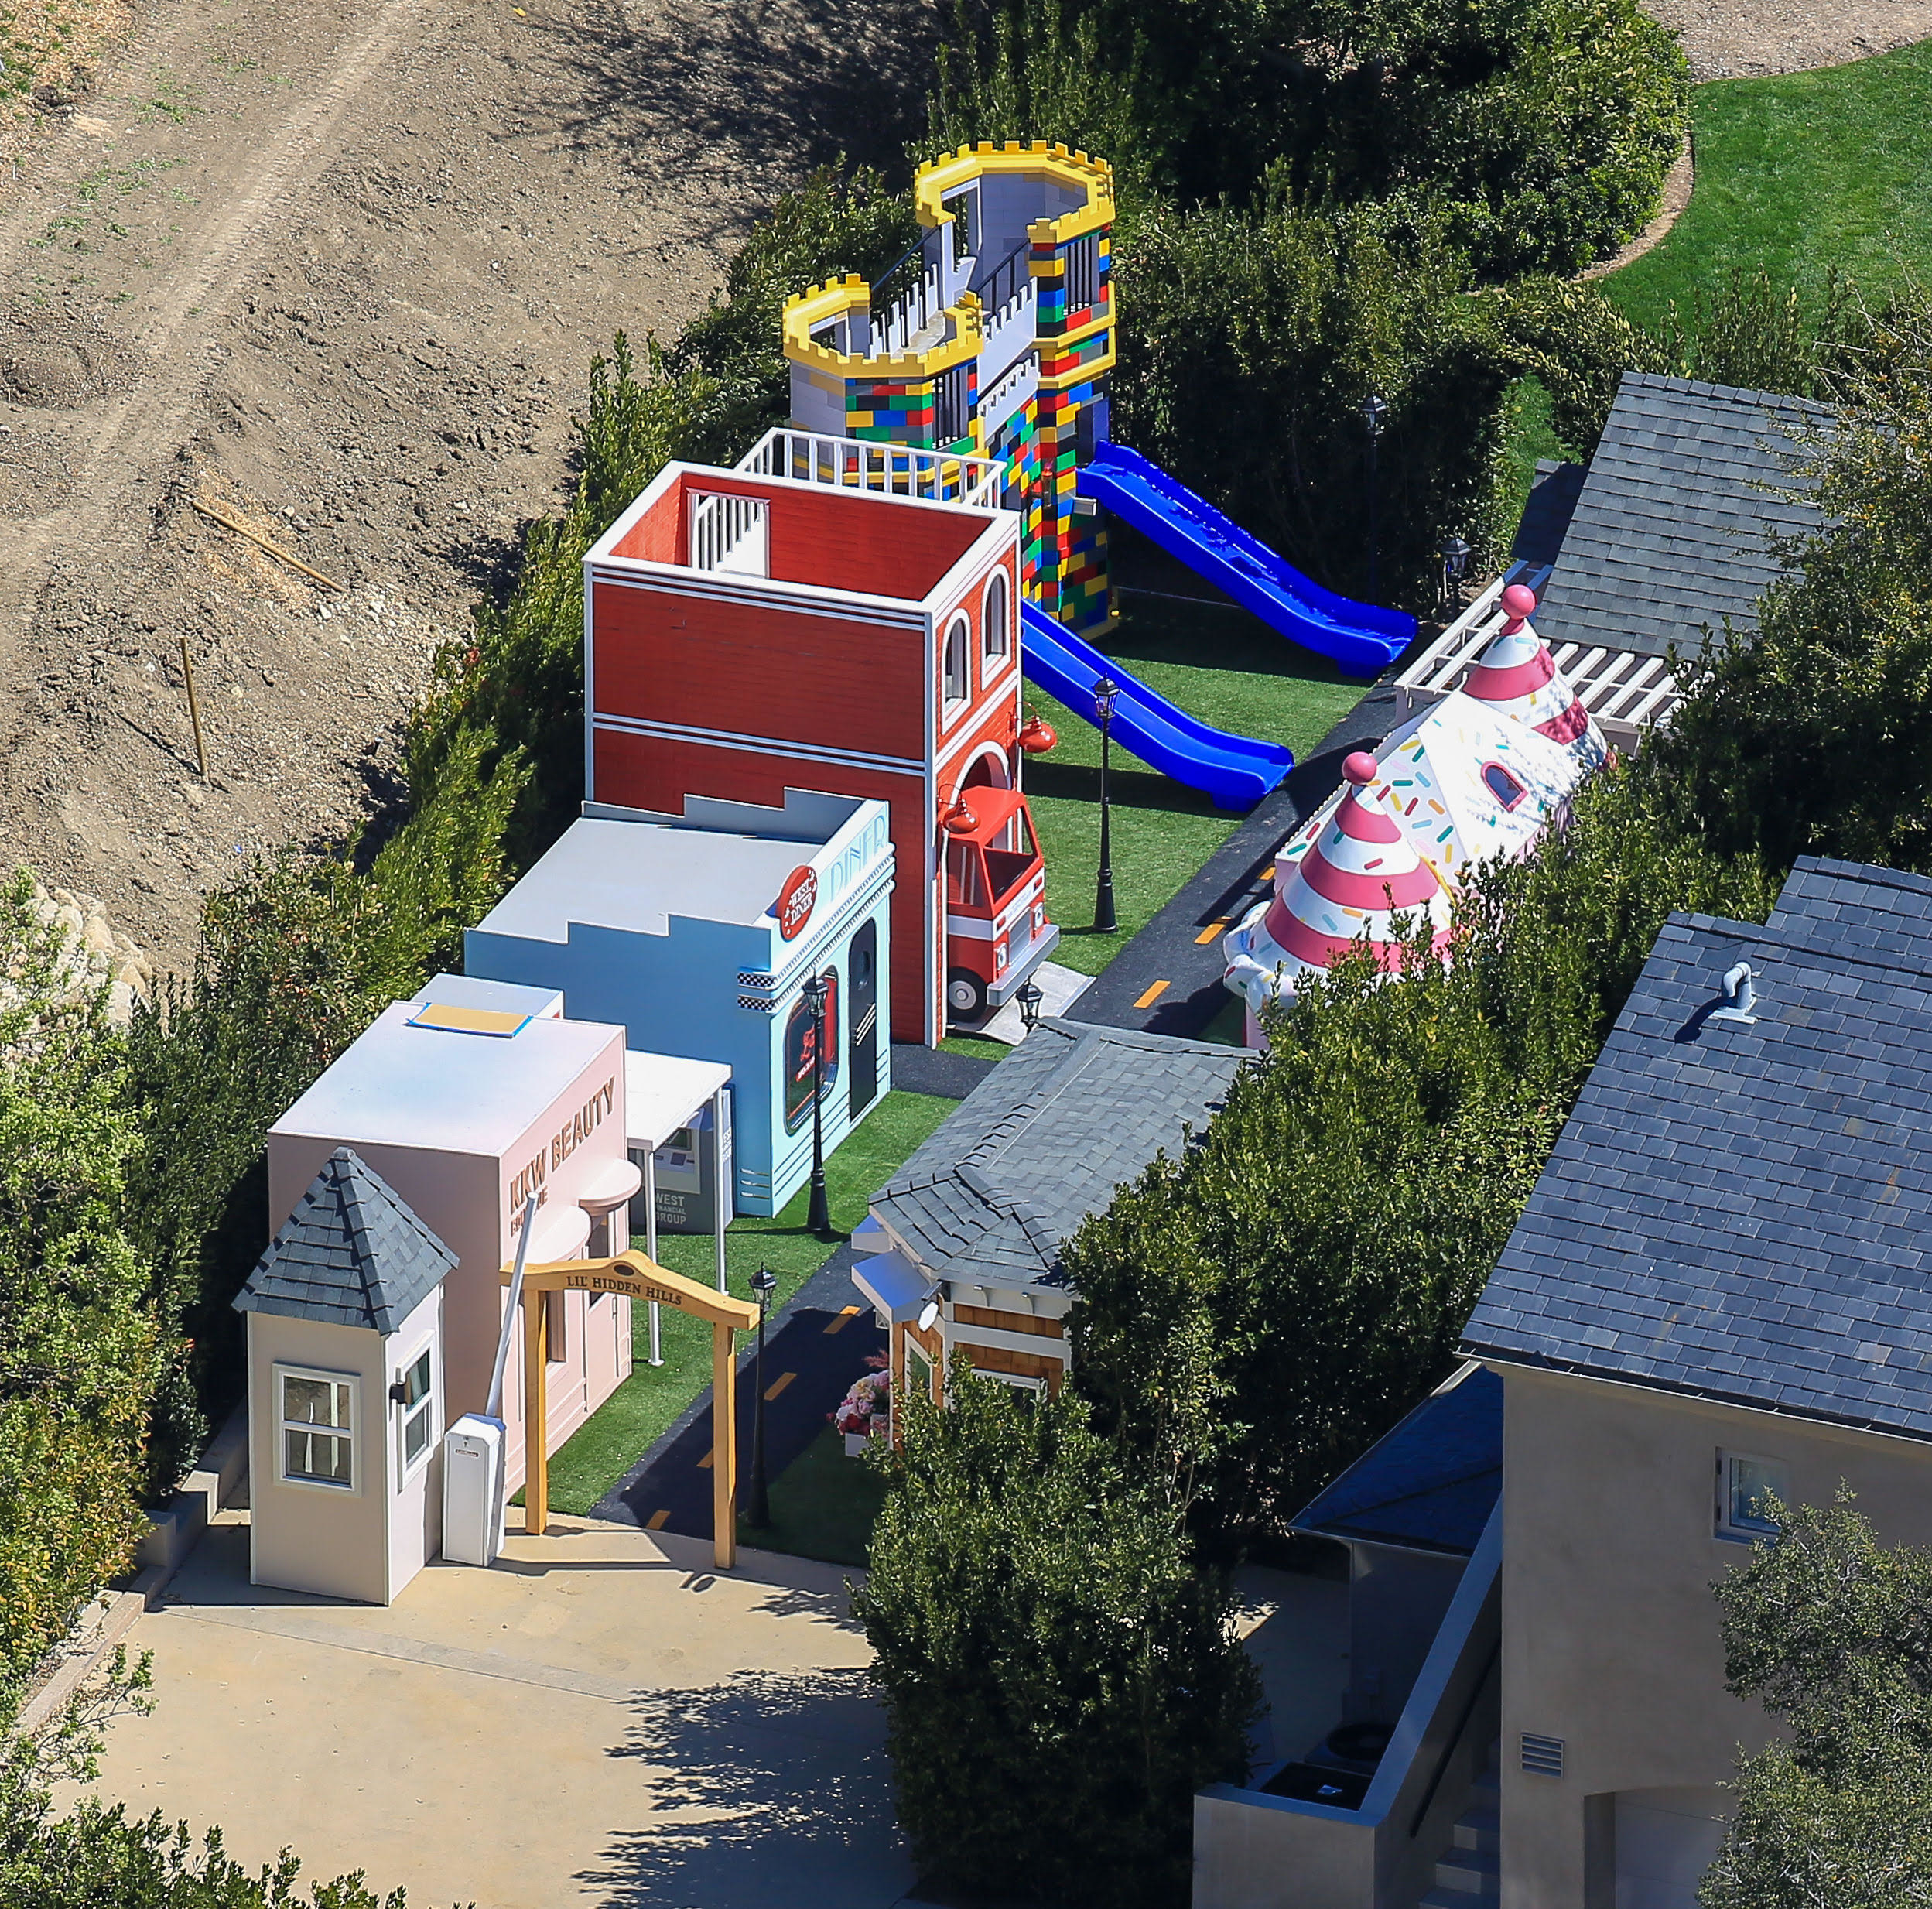 The multi-storied playhouse has two slides